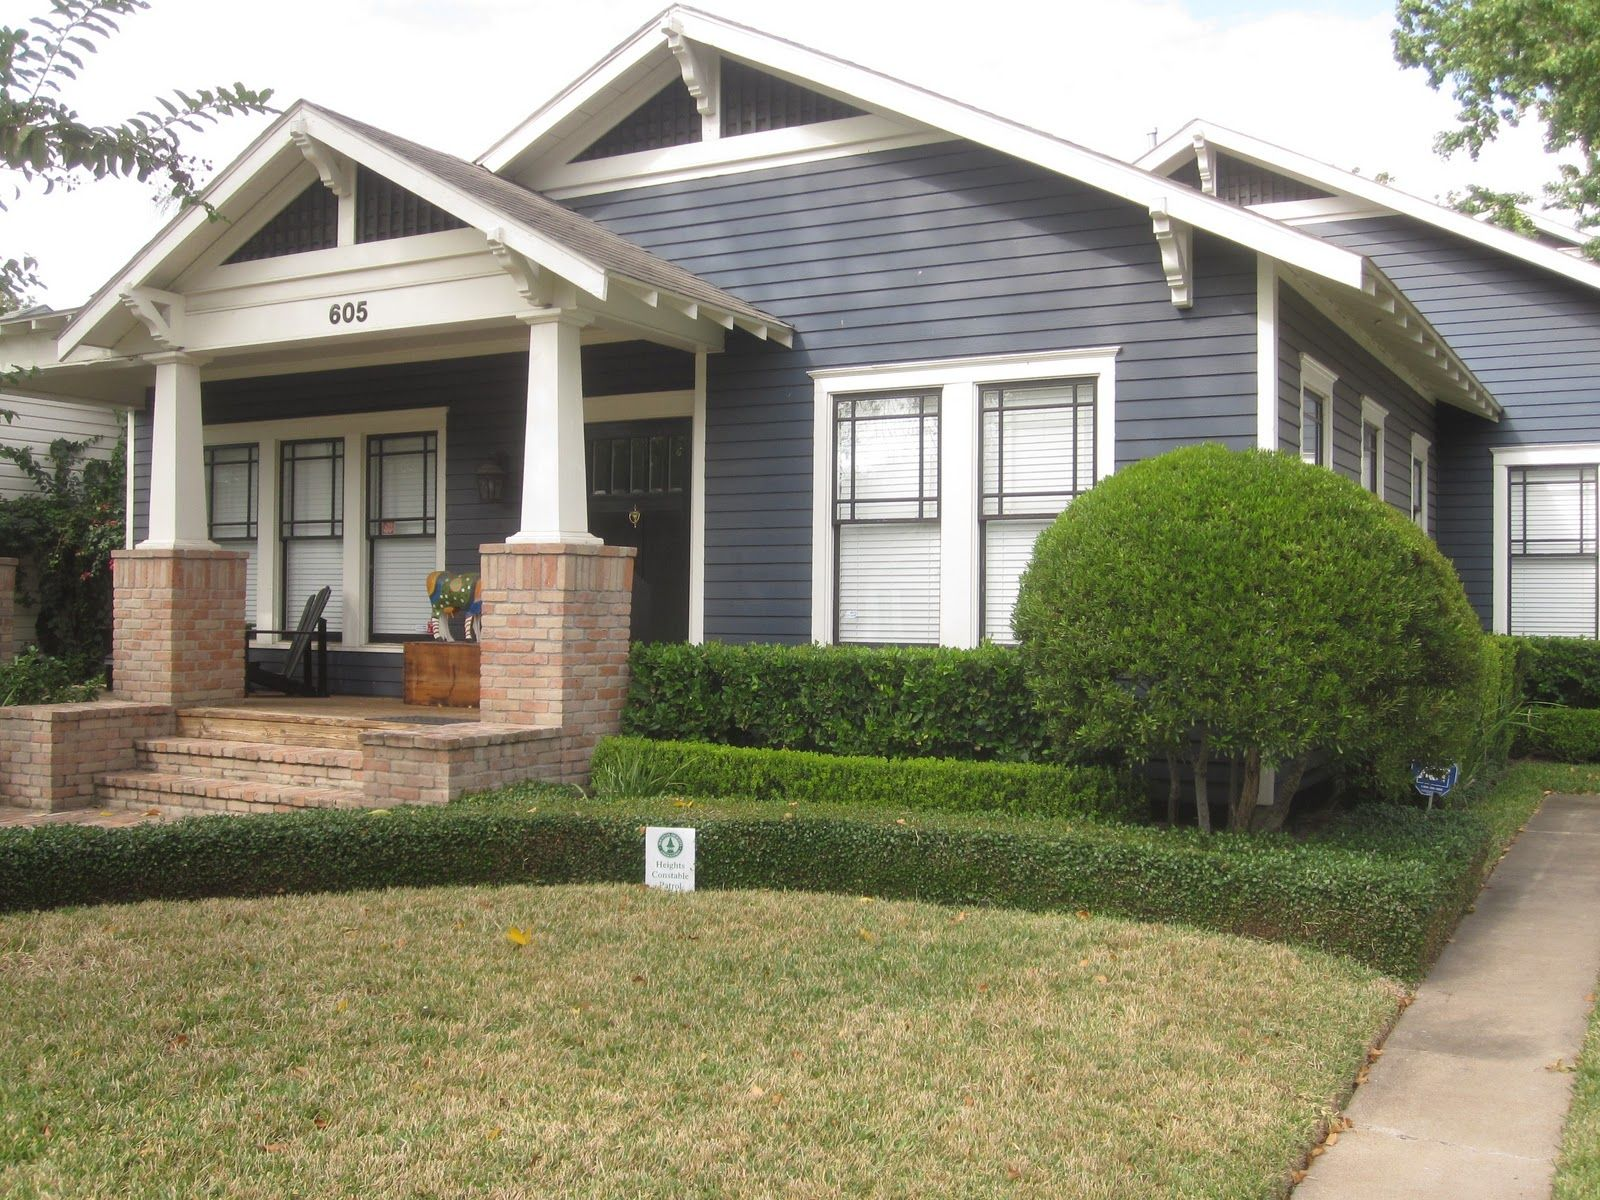 Bungalow Exterior Paint Color Schemes  Immaculately kept bungalow of bluegray with white trim